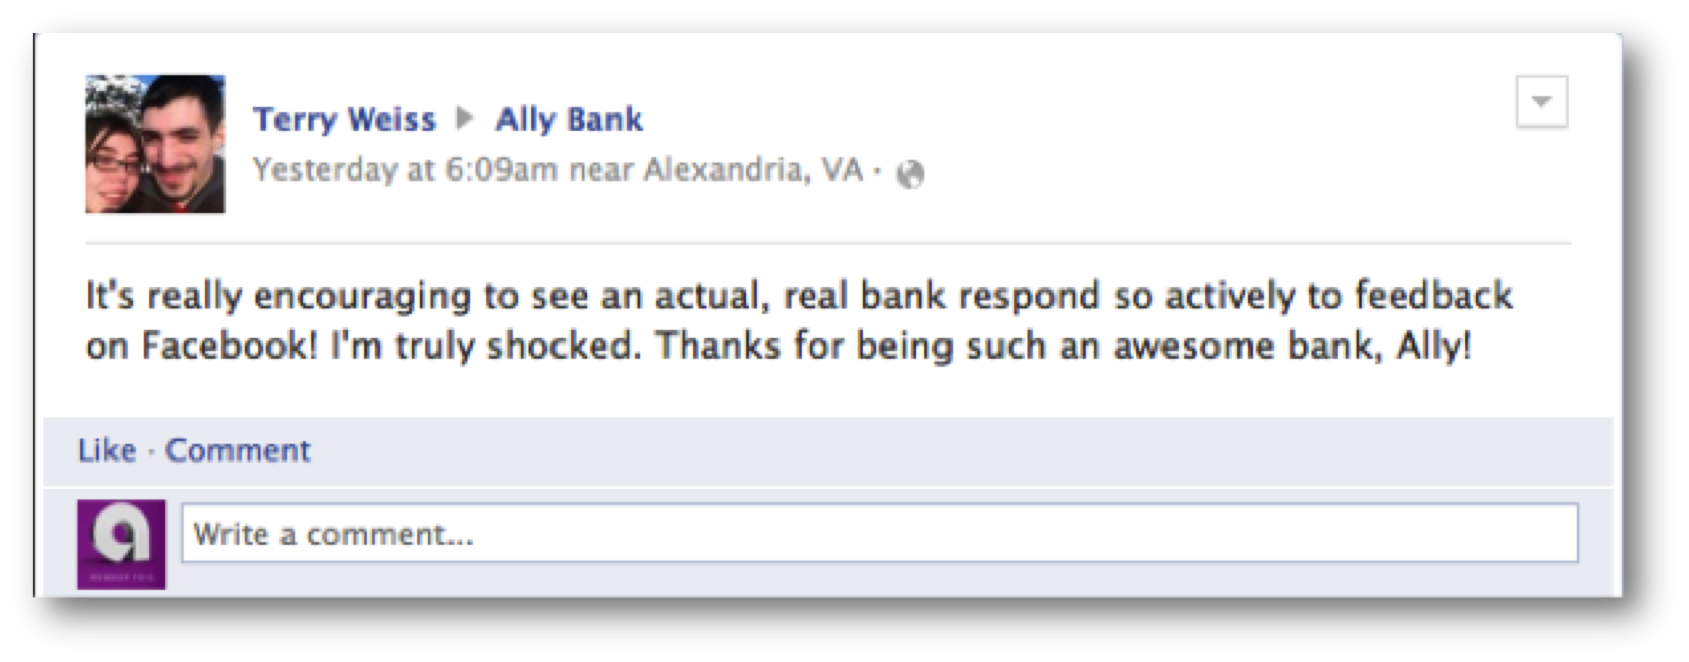 Ally Bank Customer Service - Facebook